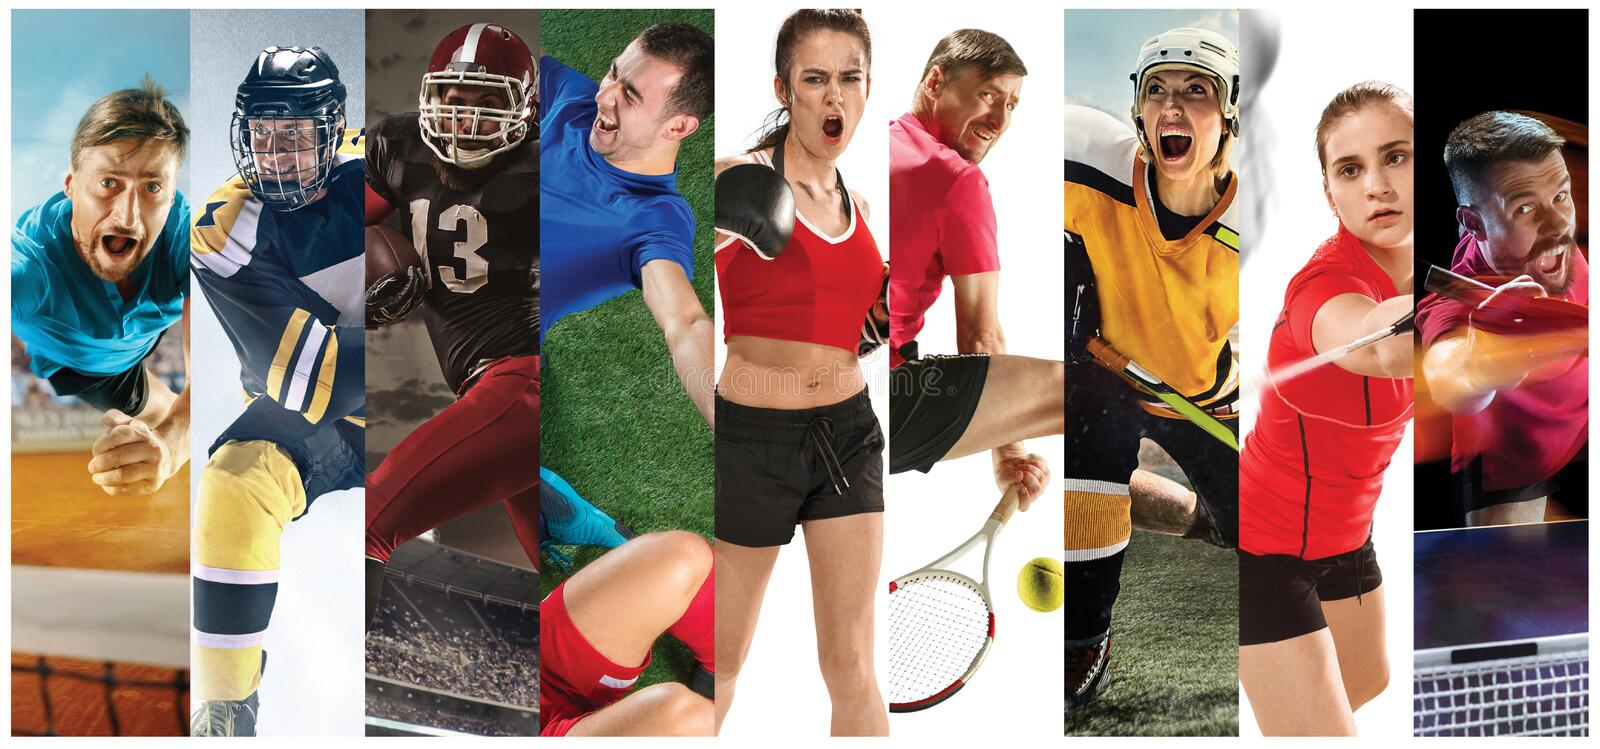 Sport collage about soccer, american football, badminton, tennis, boxing, ice and field hockey, table tennis royalty free stock photos